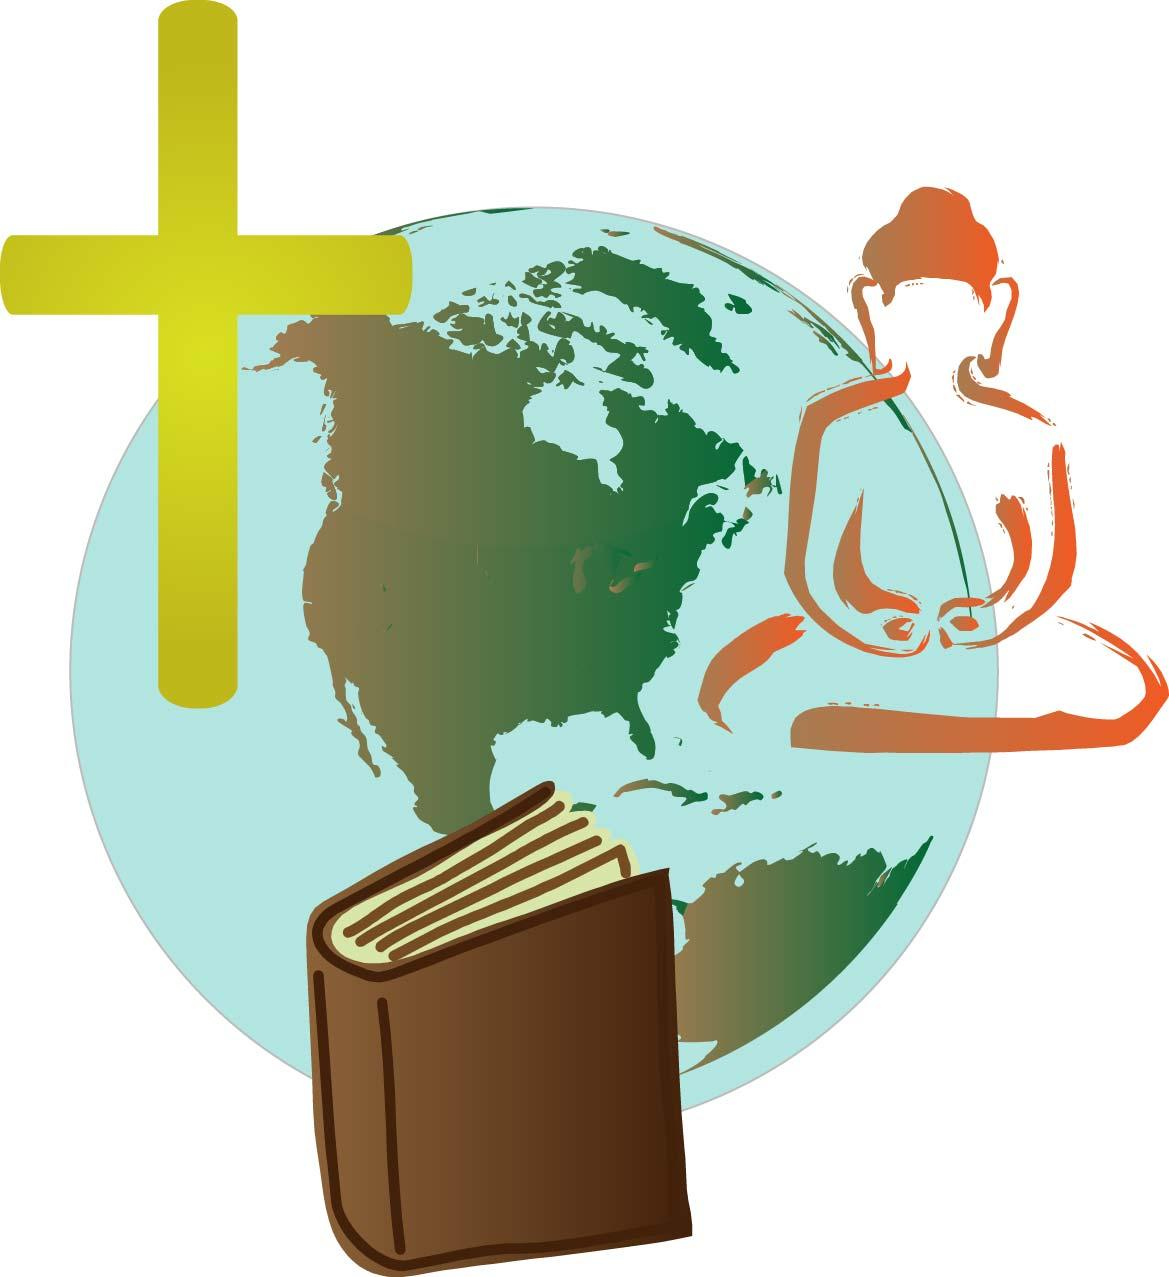 Download this Discovering Bvu Religions picture